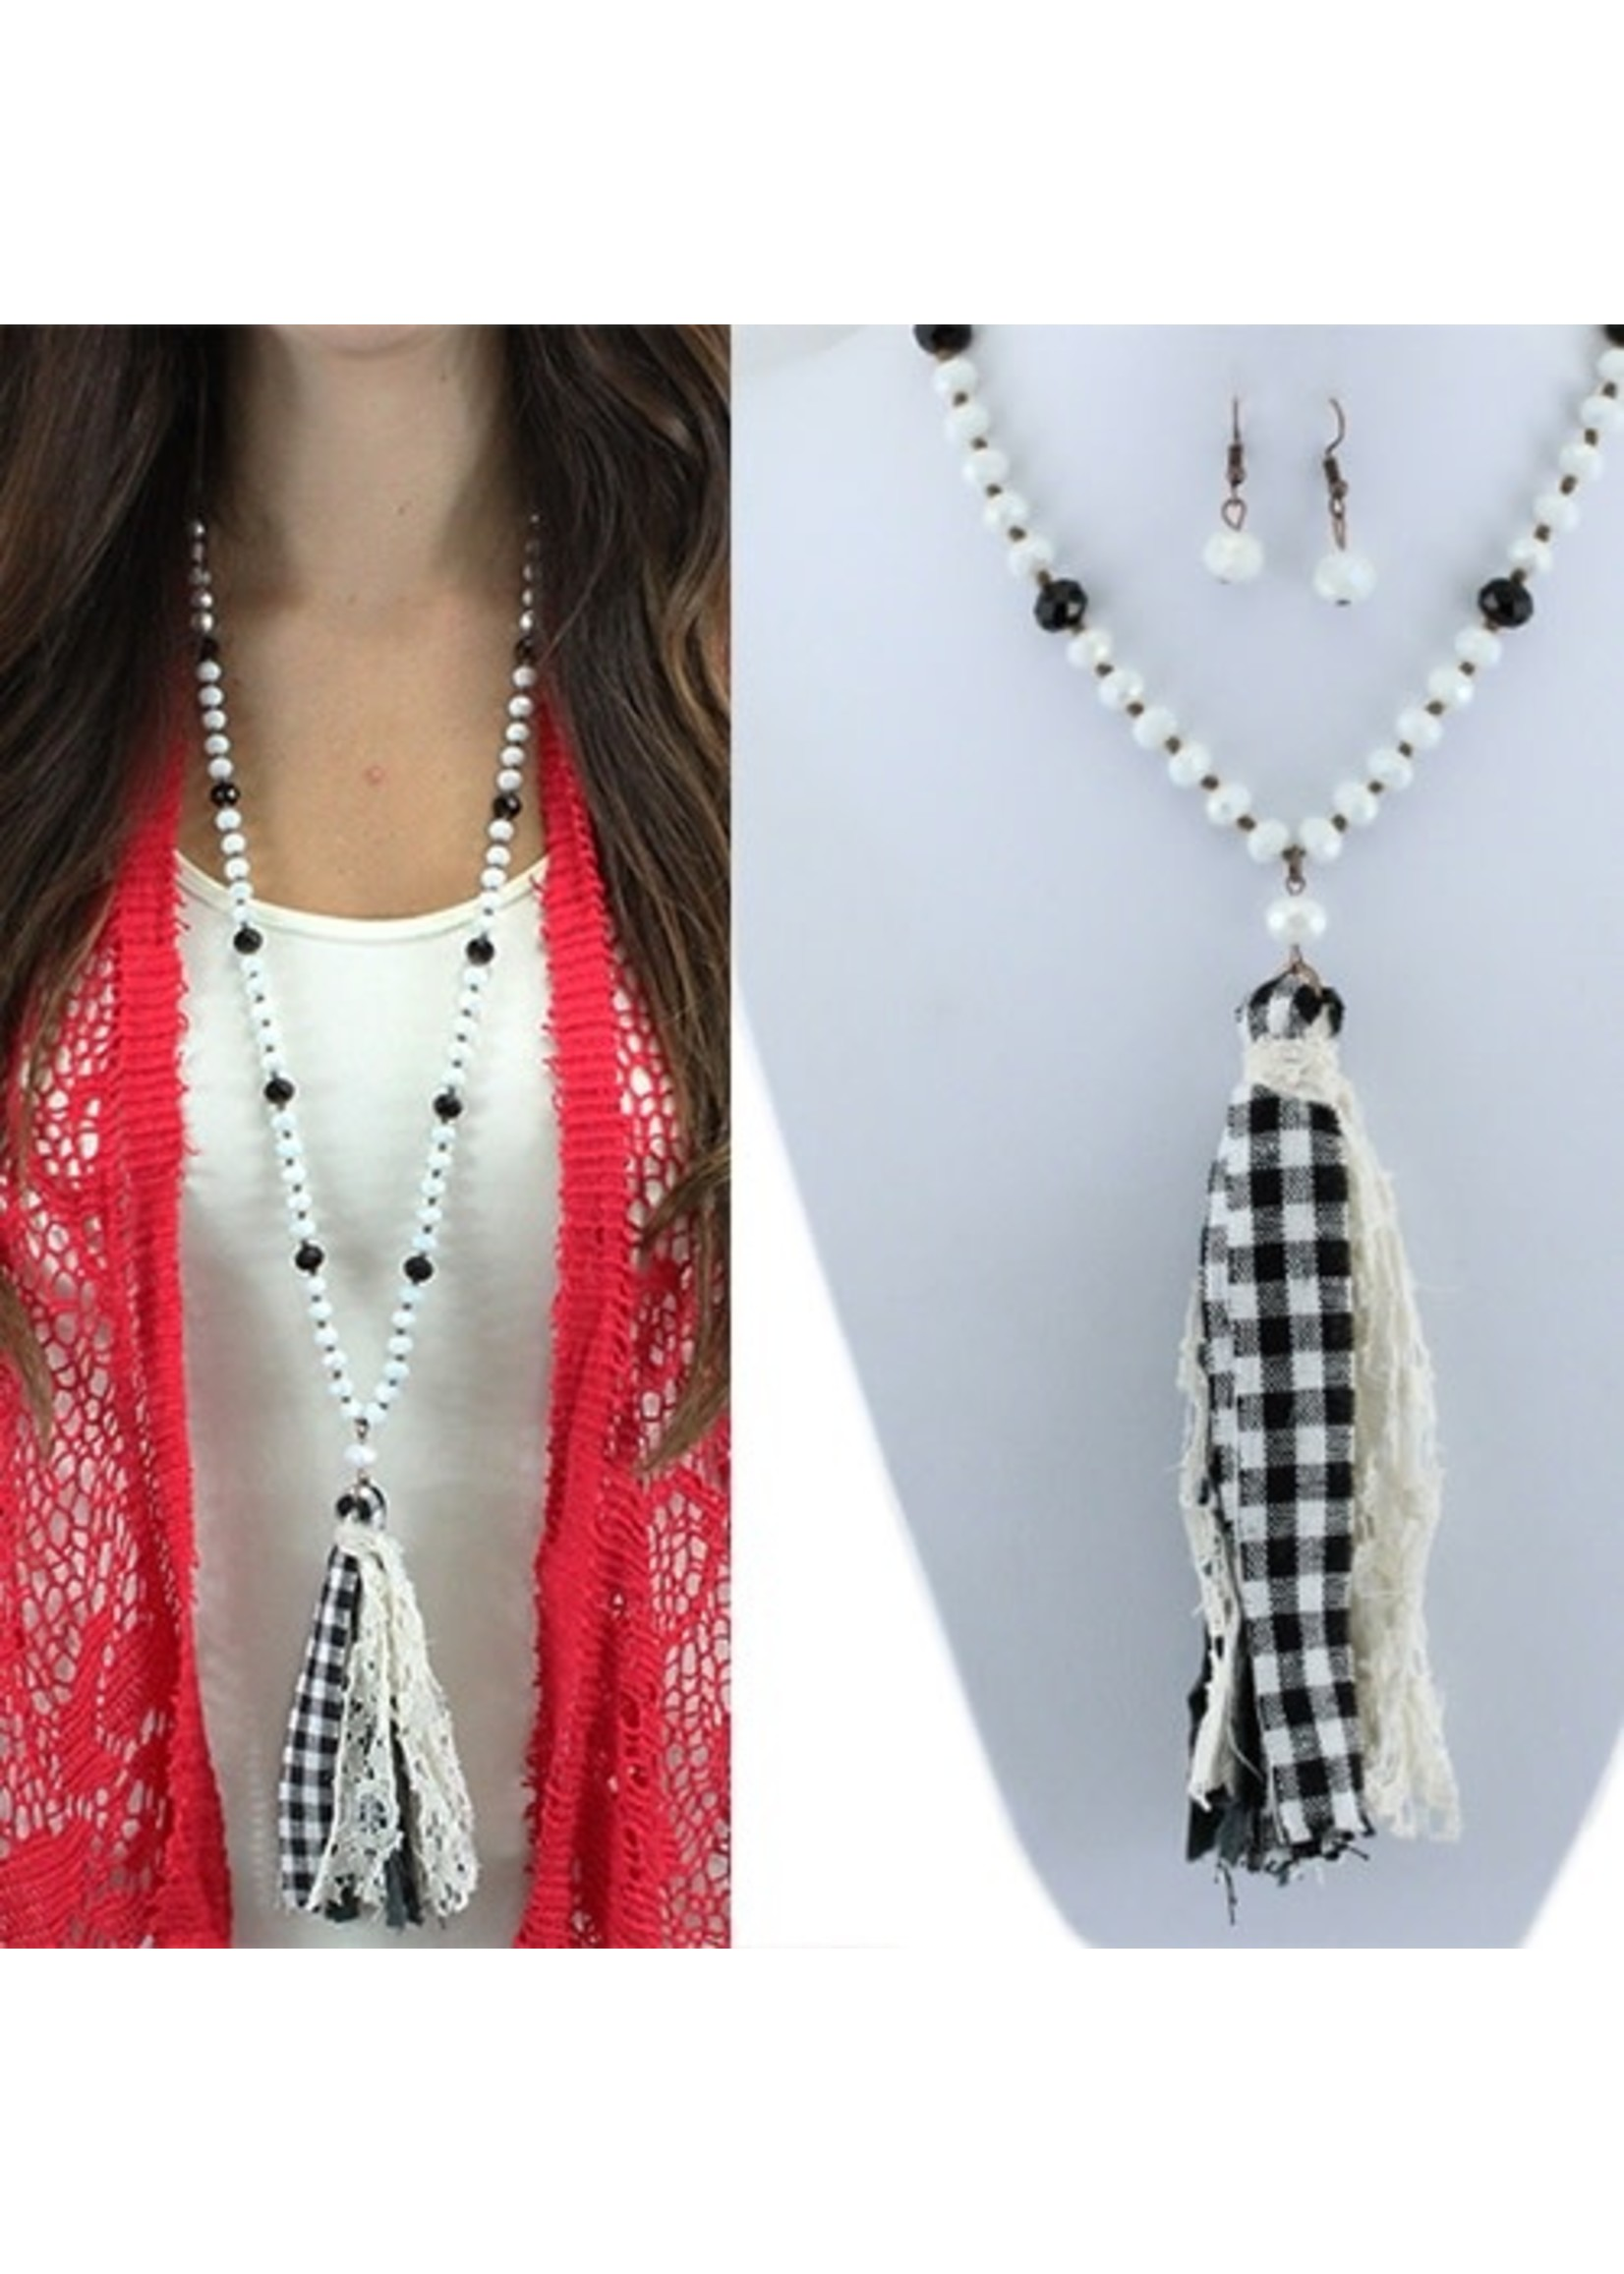 Plaid Tassel Necklace and Earrings